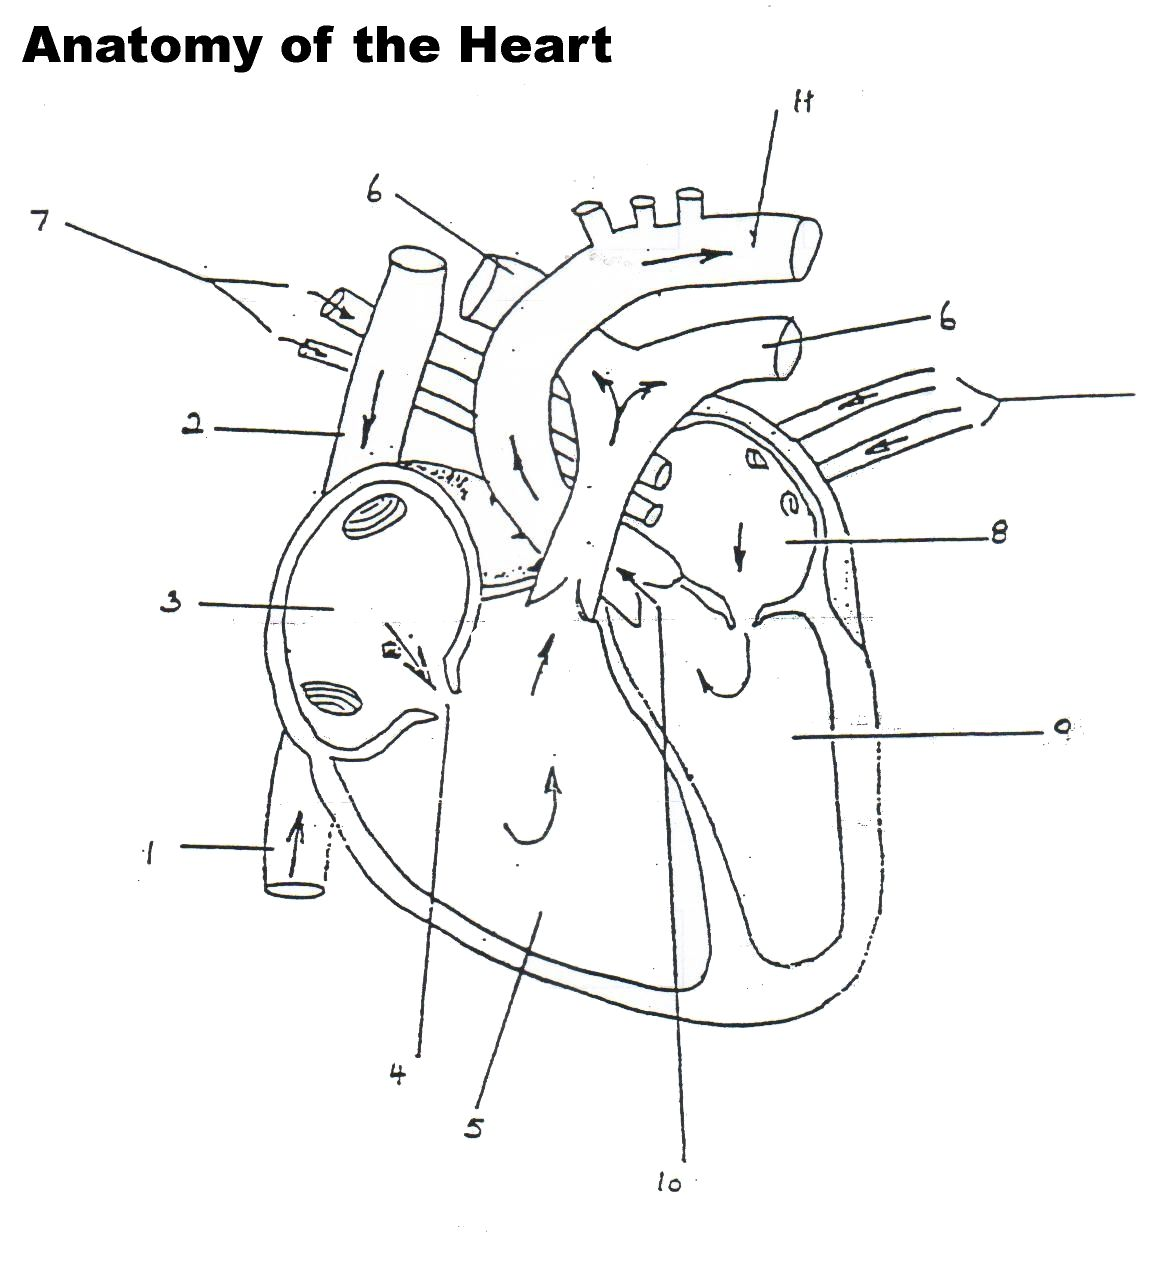 Blank Heart Anatomy Diagram